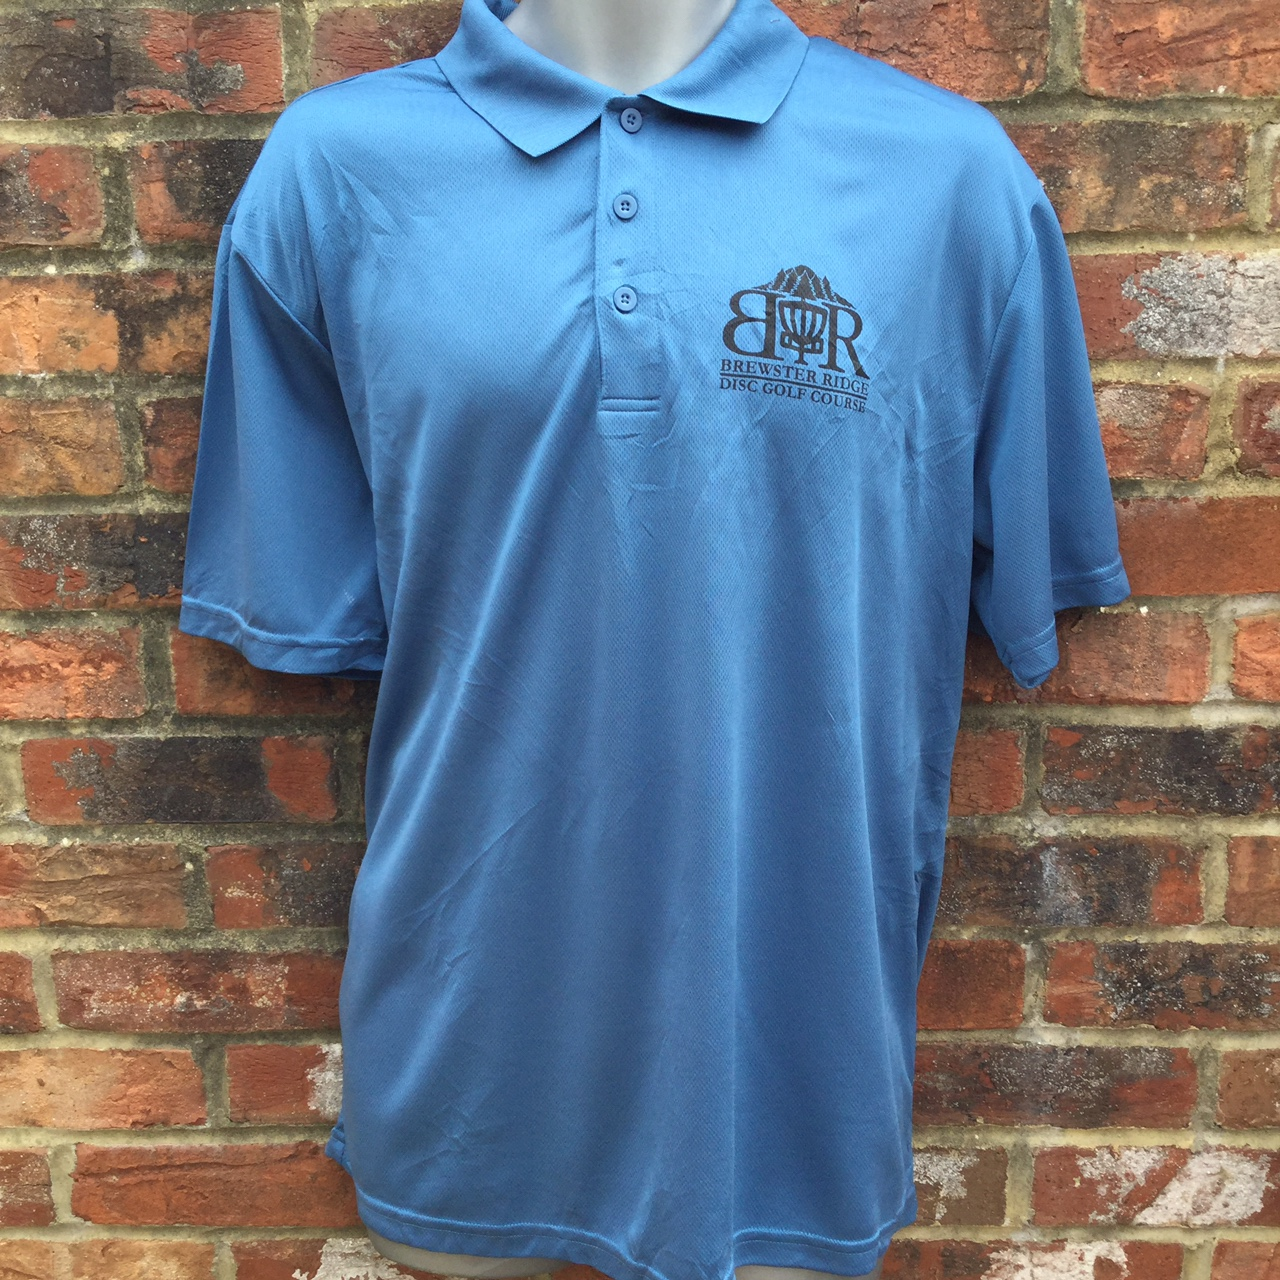 Retro Golf Top Brand Sport Tek Colour Depop The channel was launched in january 2007 after mtg had acquired many. depop